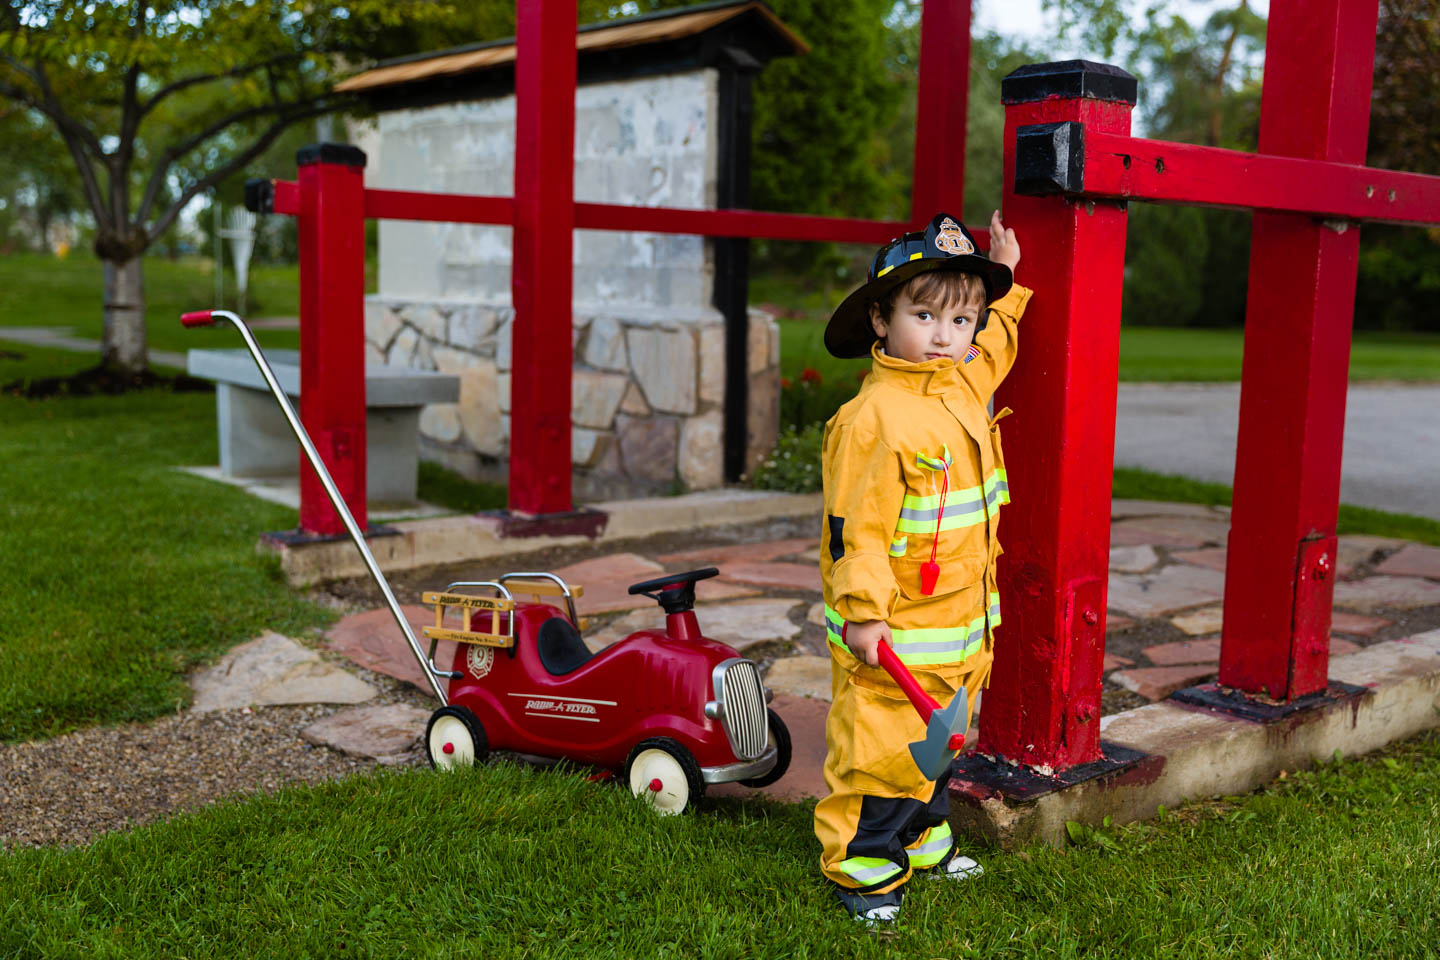 Alexander is dressed as a fire fighter and has a Radio Flyer Fire Truck